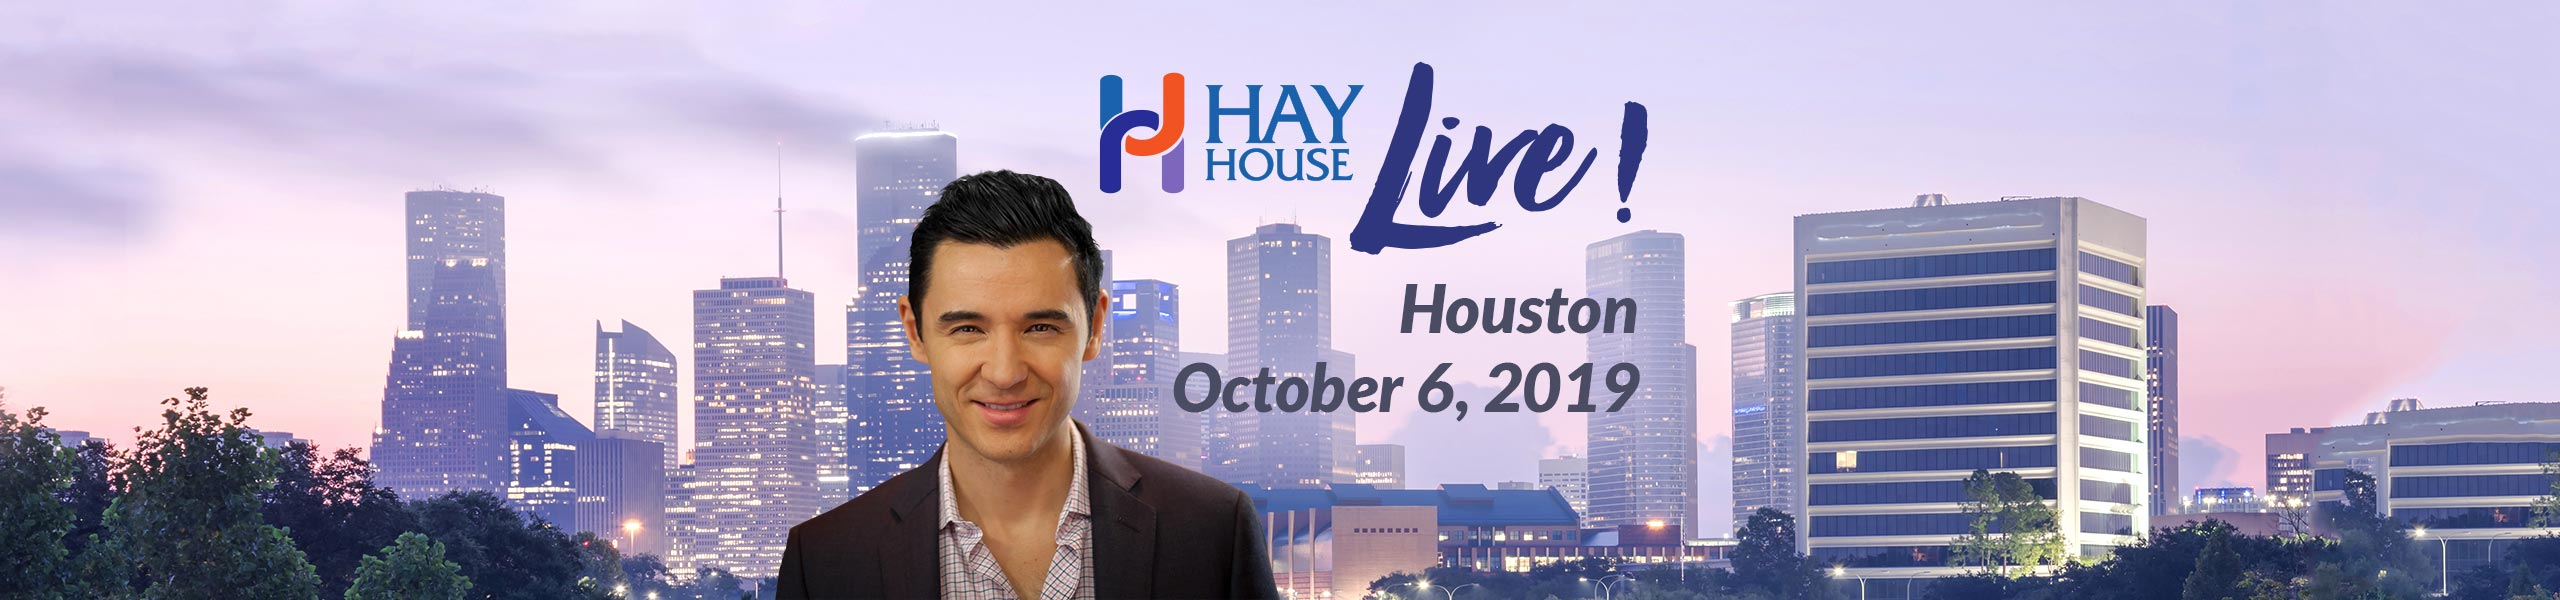 Hay House Live! Houston 2019 - Dr. Mike Dow